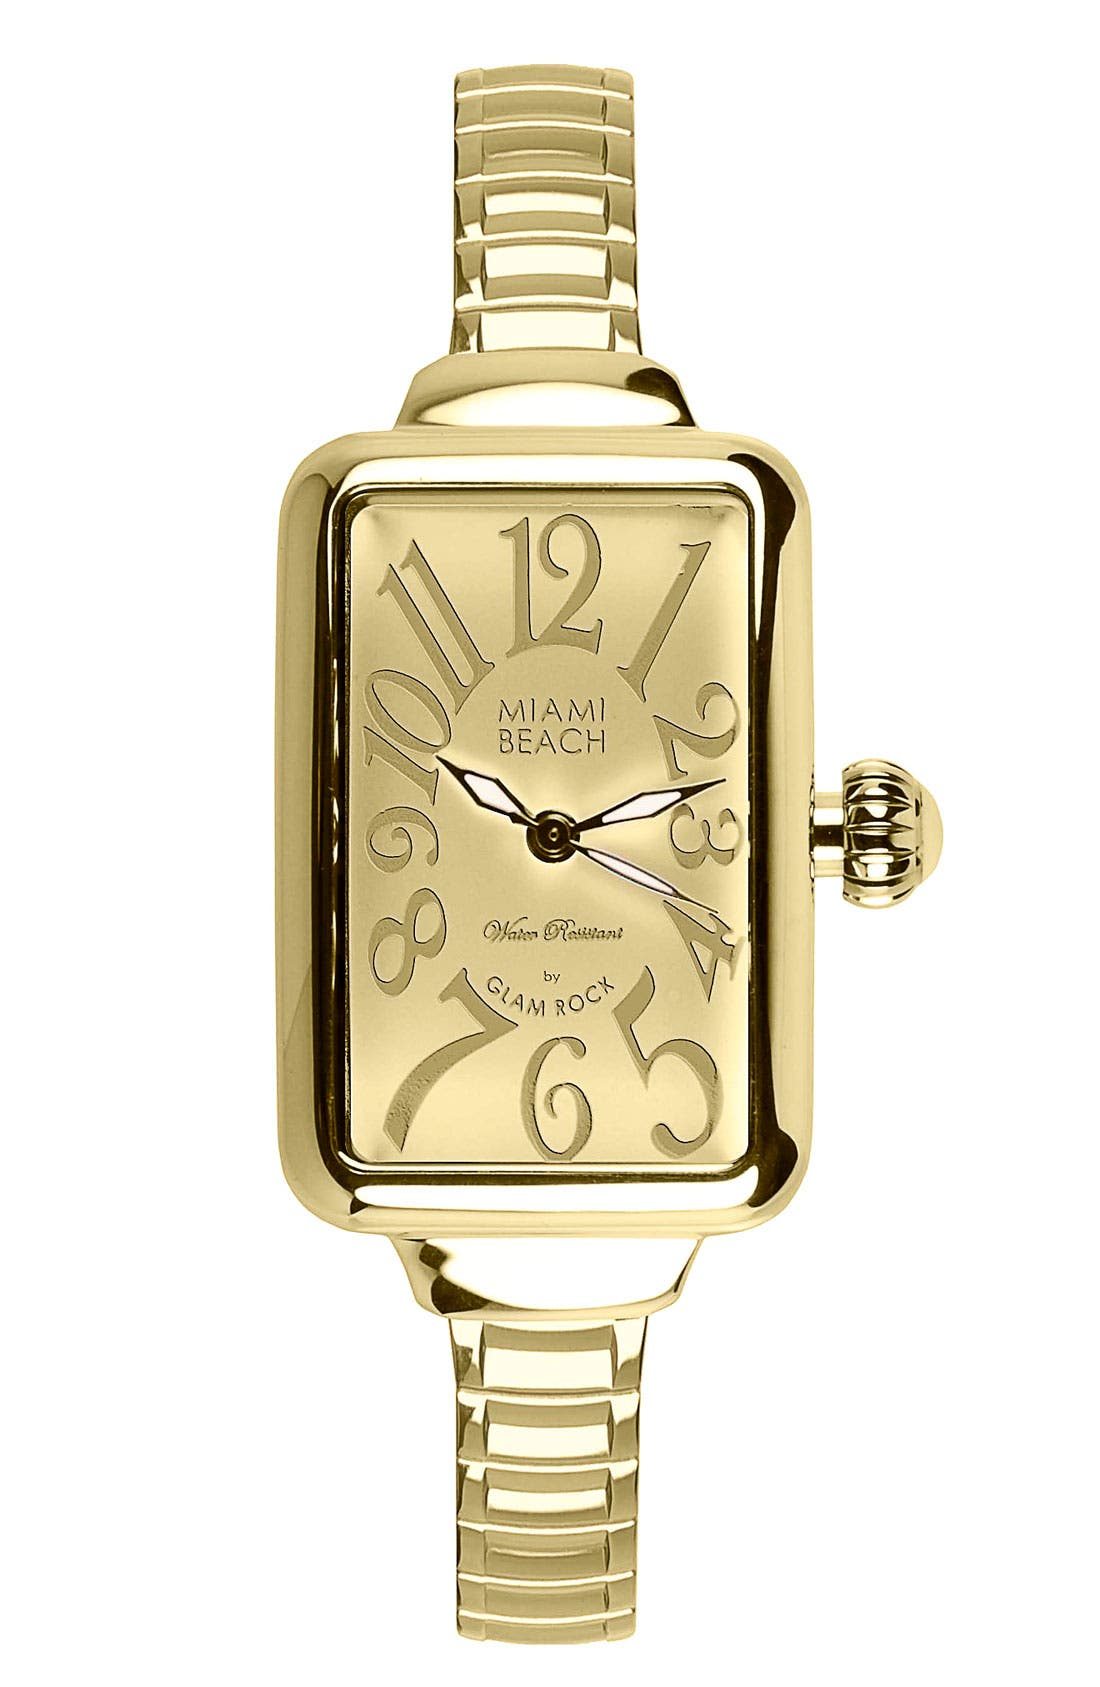 Alternate Image 1 Selected - Miami Beach by Glam Rock Rectangular Expansion Bracelet Watch